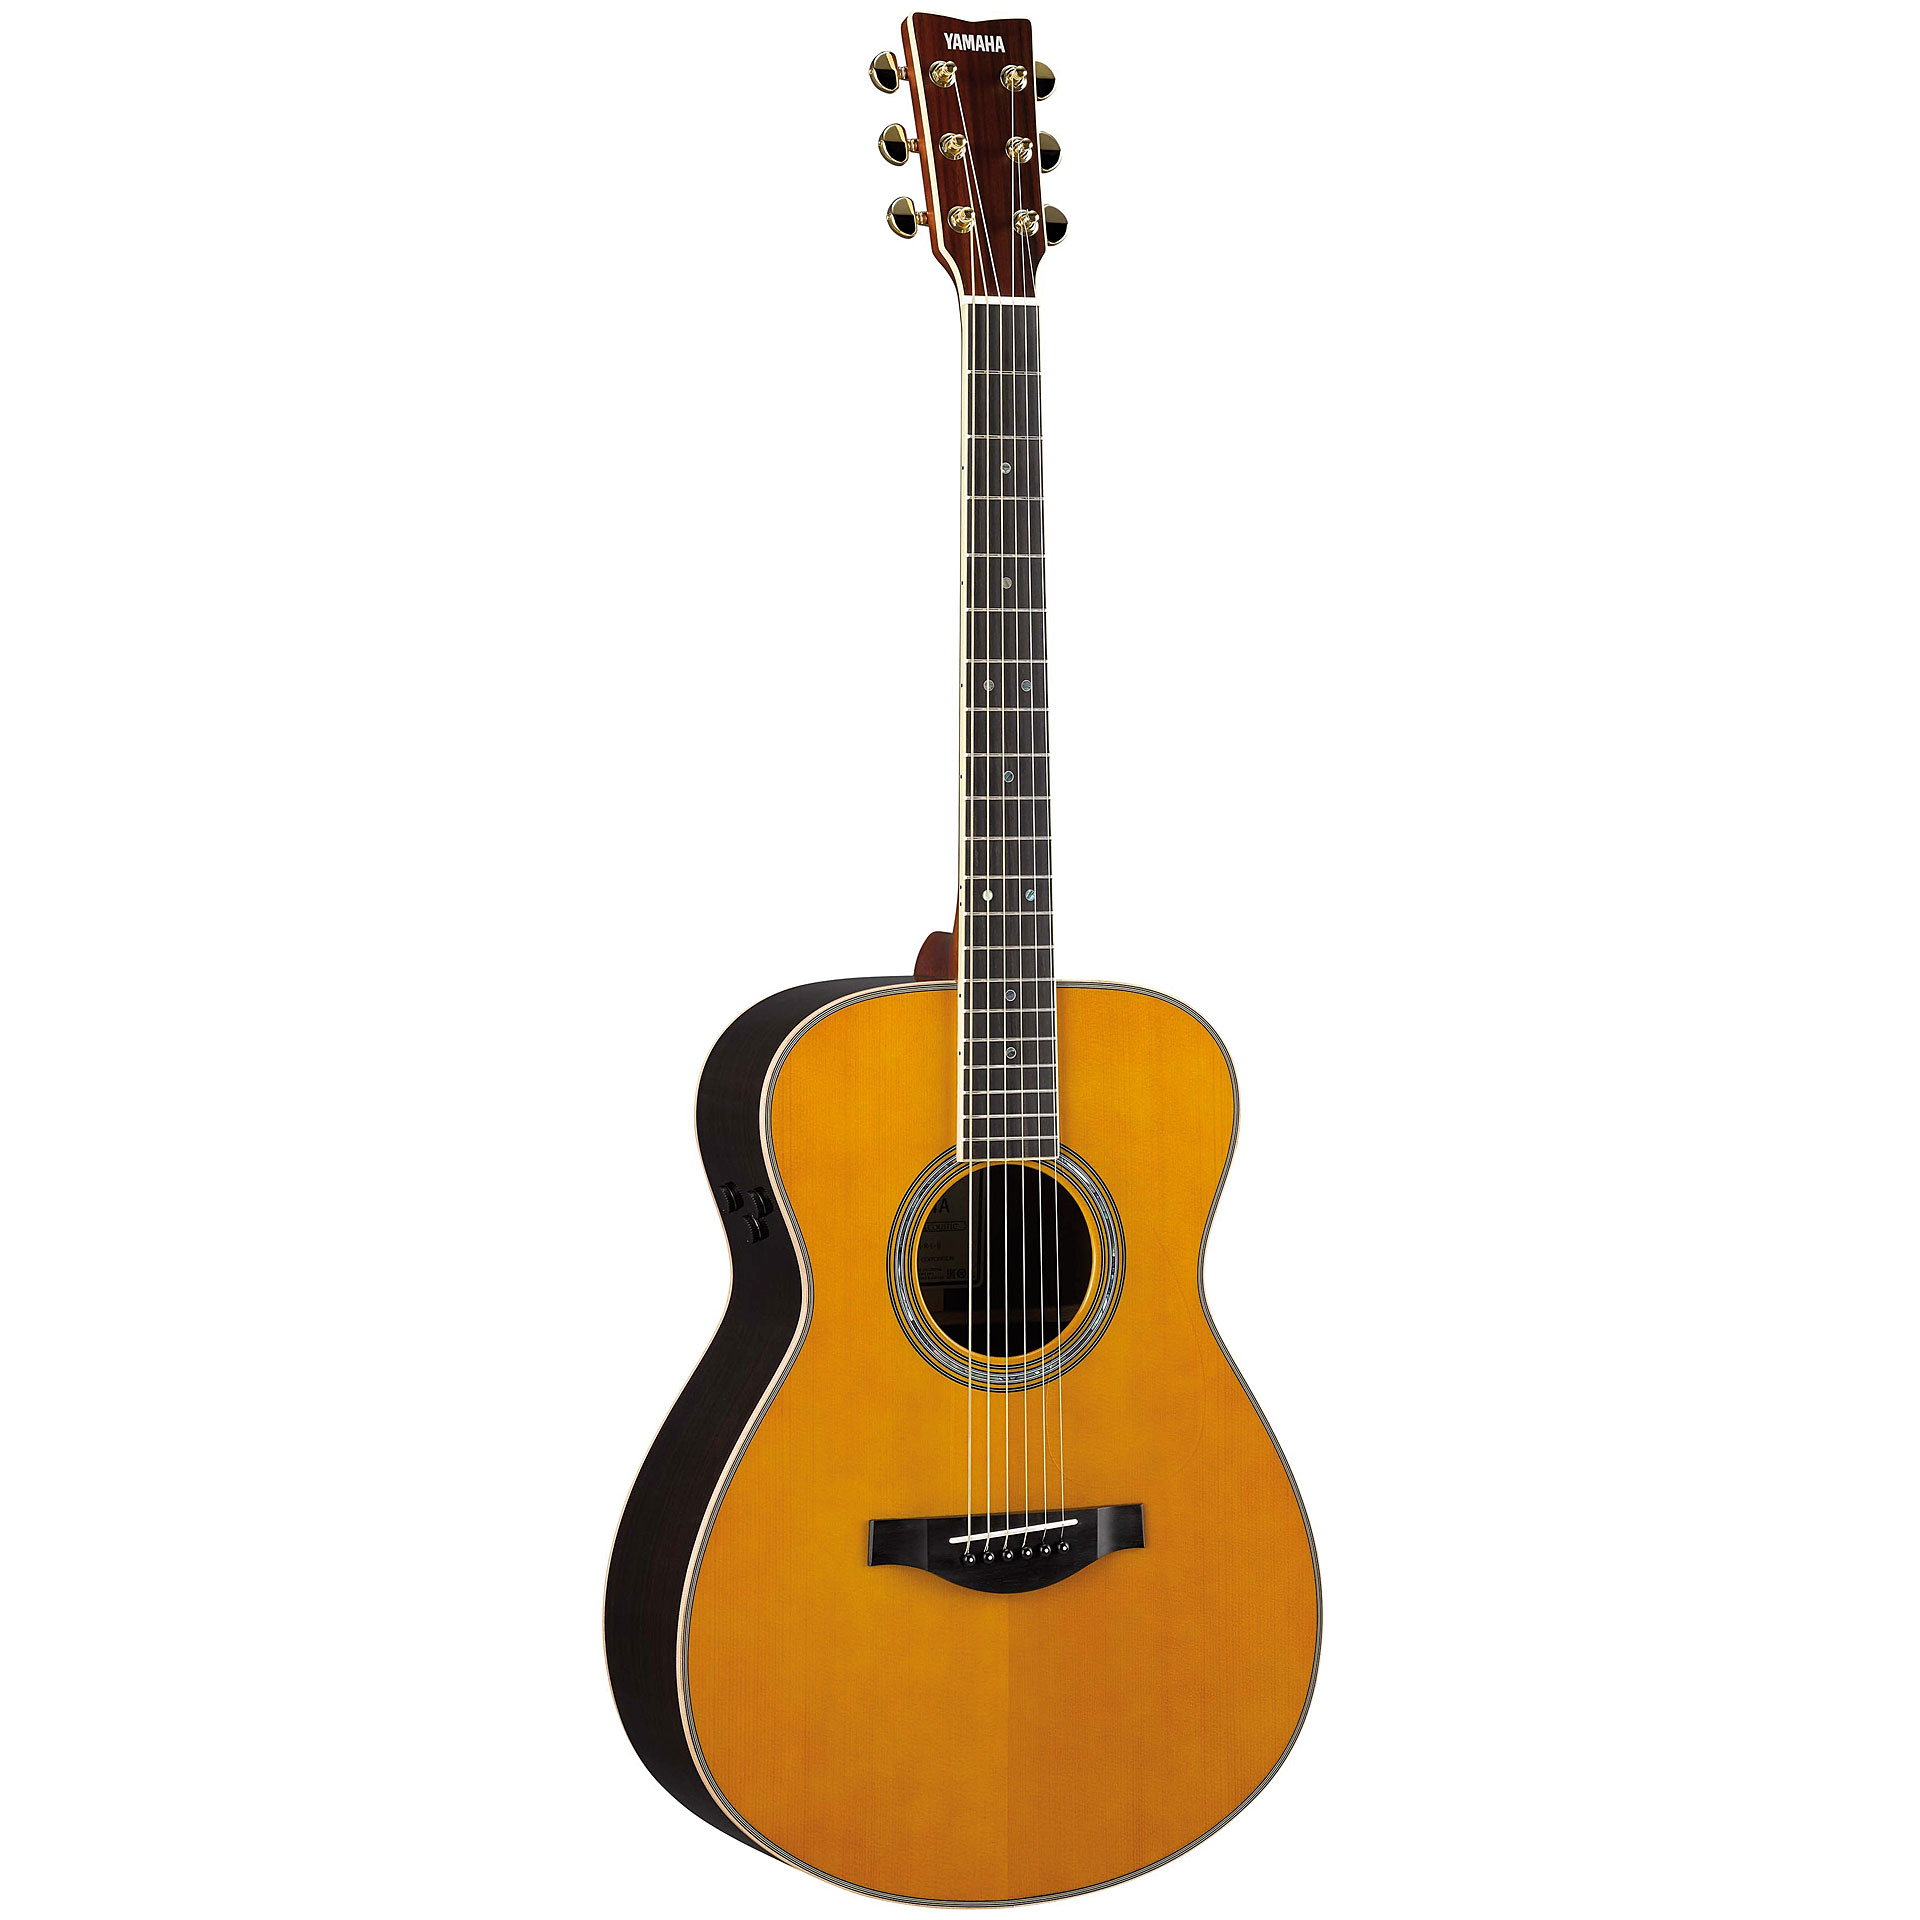 Yamaha Ls Acoustic Guitar Review